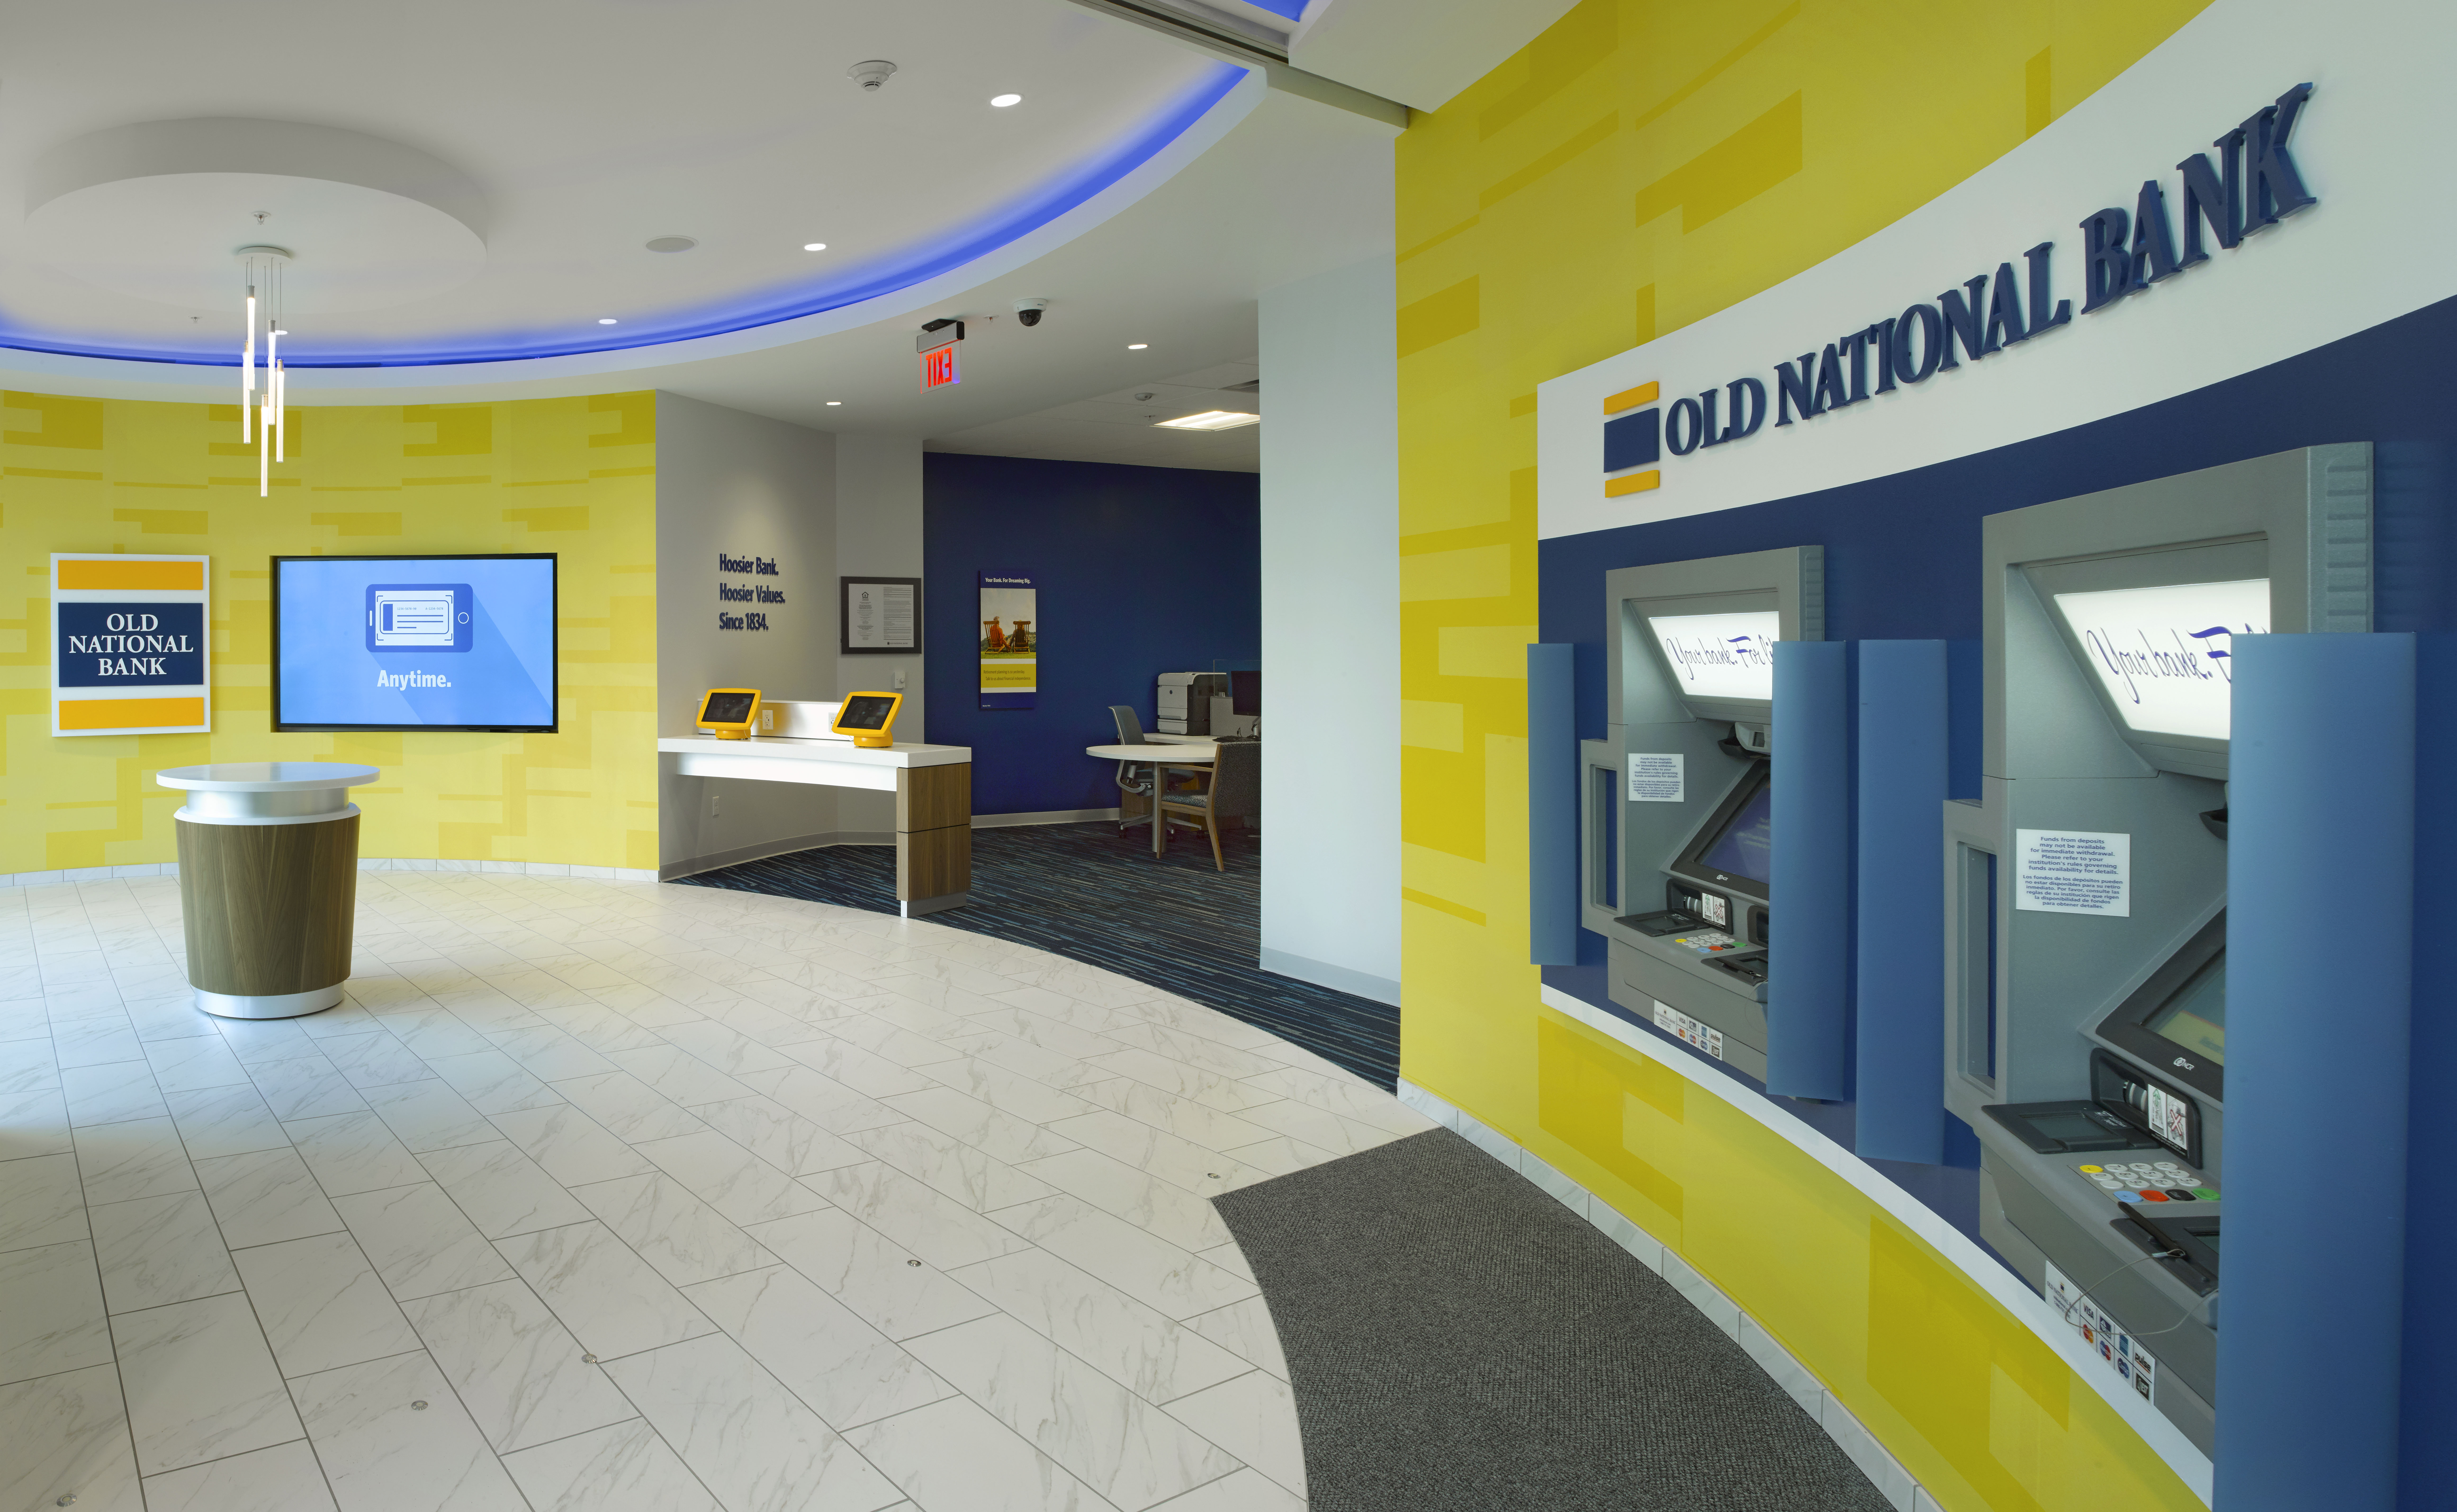 Bank Design Home.Addy Award Goes To Old National Bank Of The Future Adrenaline